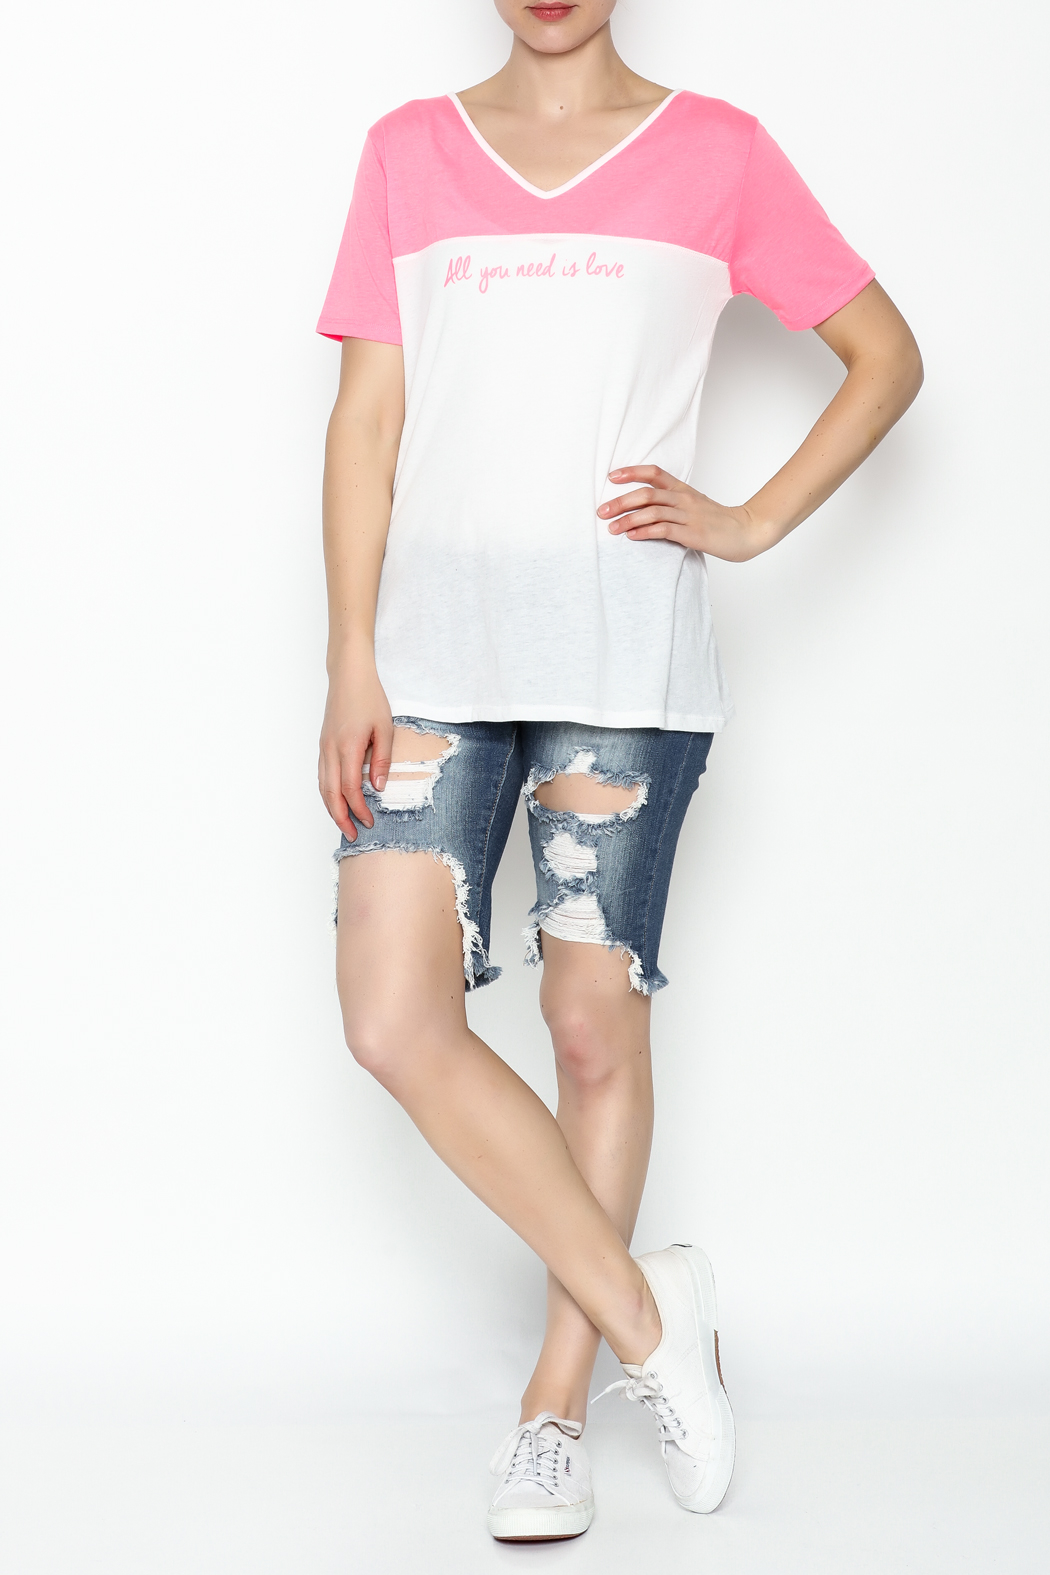 Daisy's Fashions V Neck Printed Tee - Side Cropped Image